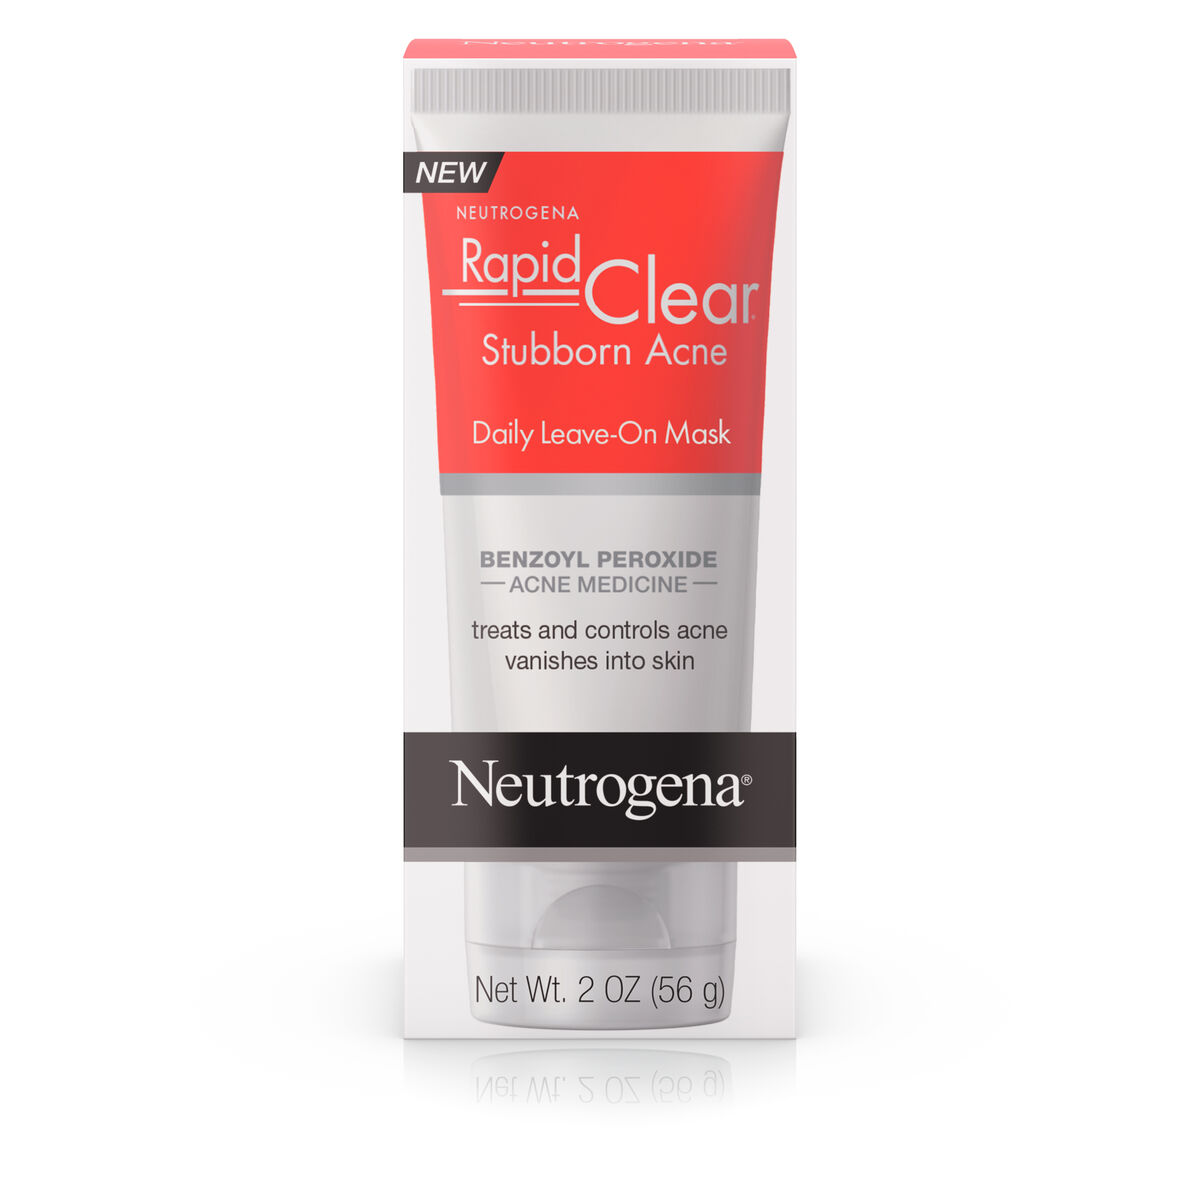 Rapid Clear Stubborn Acne Daily Leave On Mask